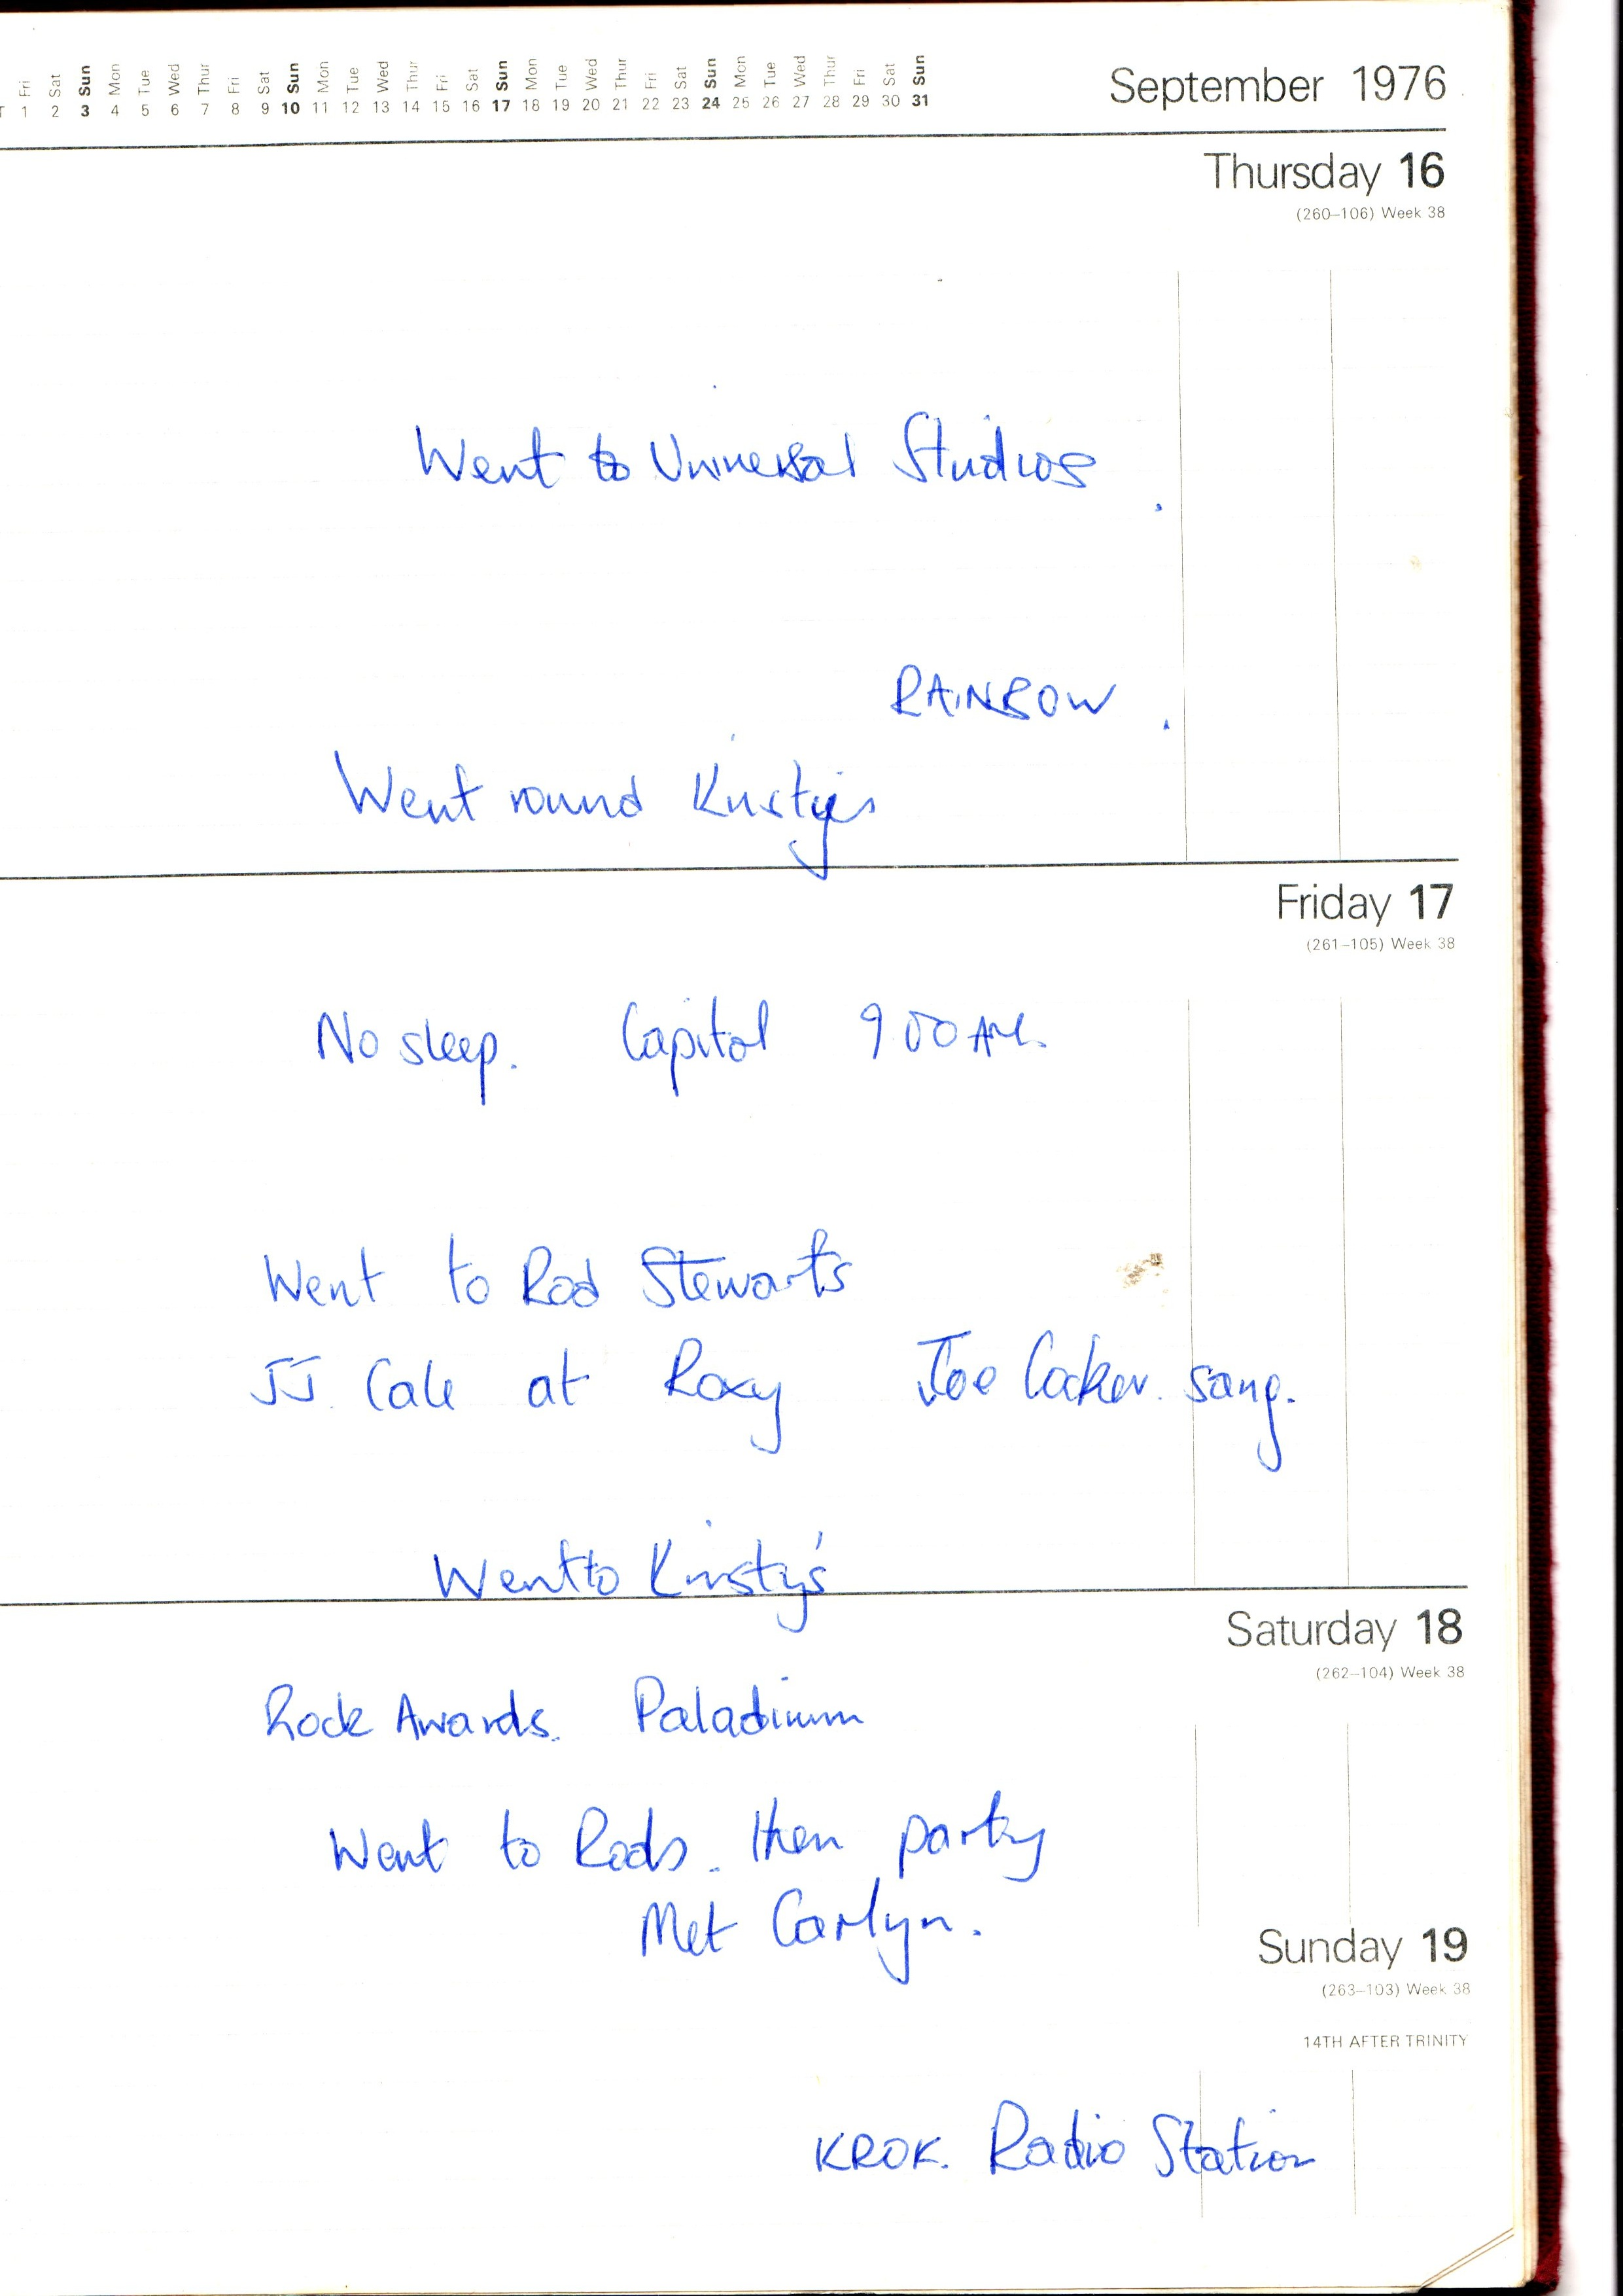 september diary entry 76 page 4